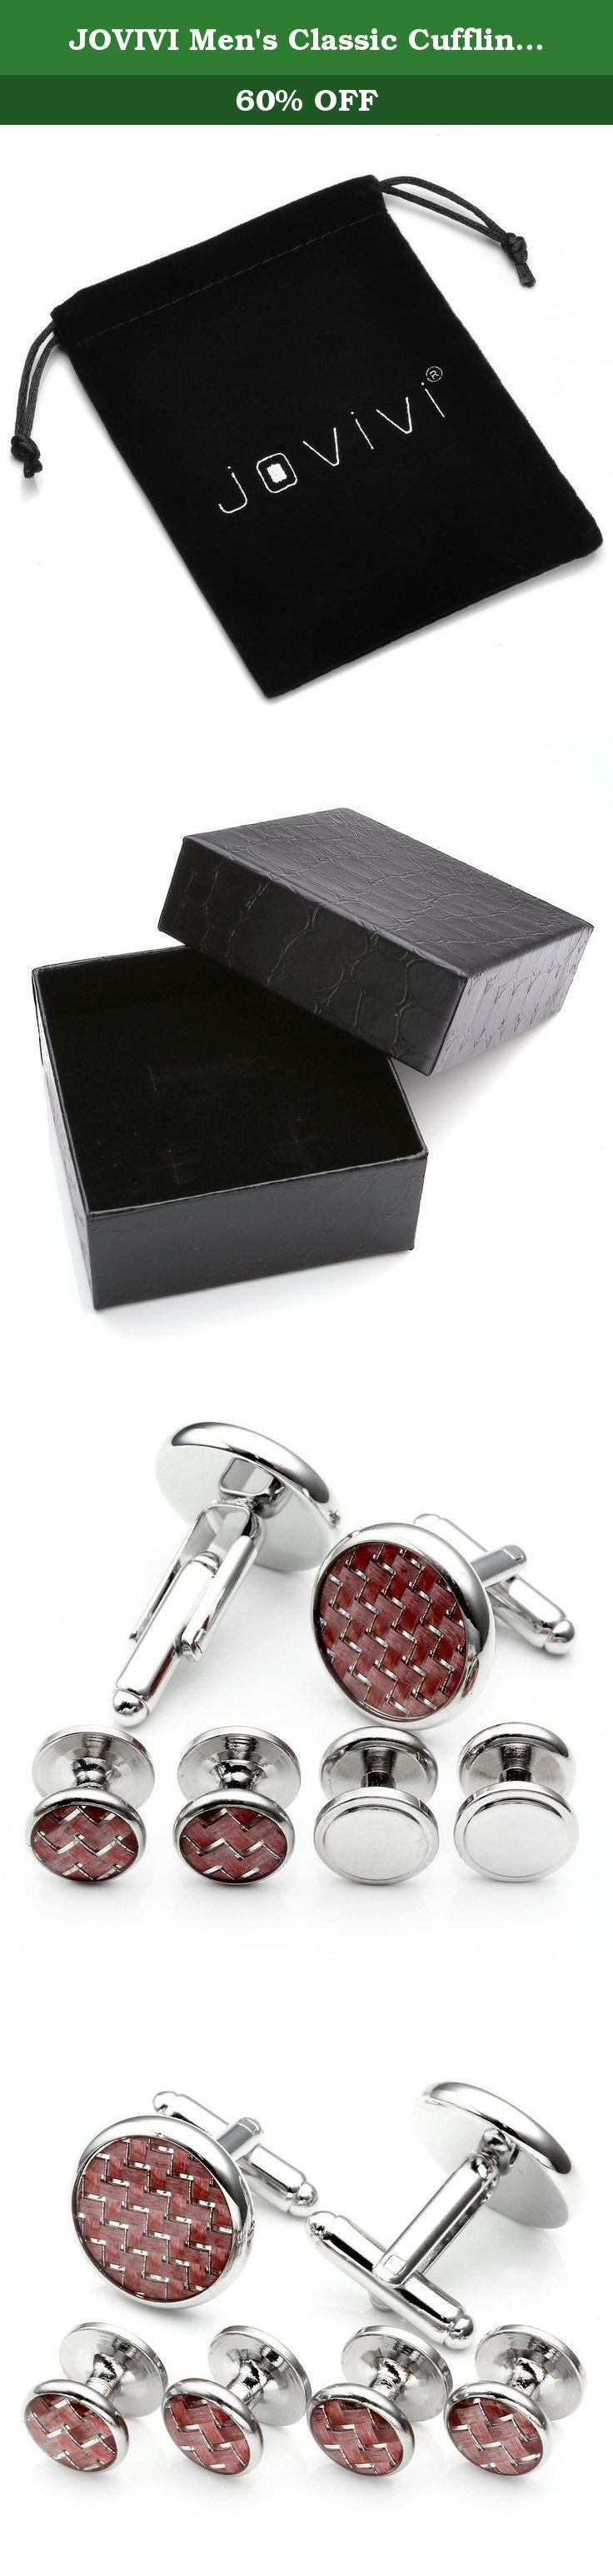 JOVIVI Men's Classic Cufflinks and Studs Set for Tuxedo Shirts Wedding, Stainless Steel Carbon Fiber Silver Black Color w/Box. *Thank you for visiting JOVIVI Store. We are specializing in jewelry making beads and findings. *If you like this product, we advise you add it to wish list now, so that we will inform you immediately once it has a discount. *And you can click our brand name which on the top of the title; you can find more jewelry making beads with high quality and reasonable…